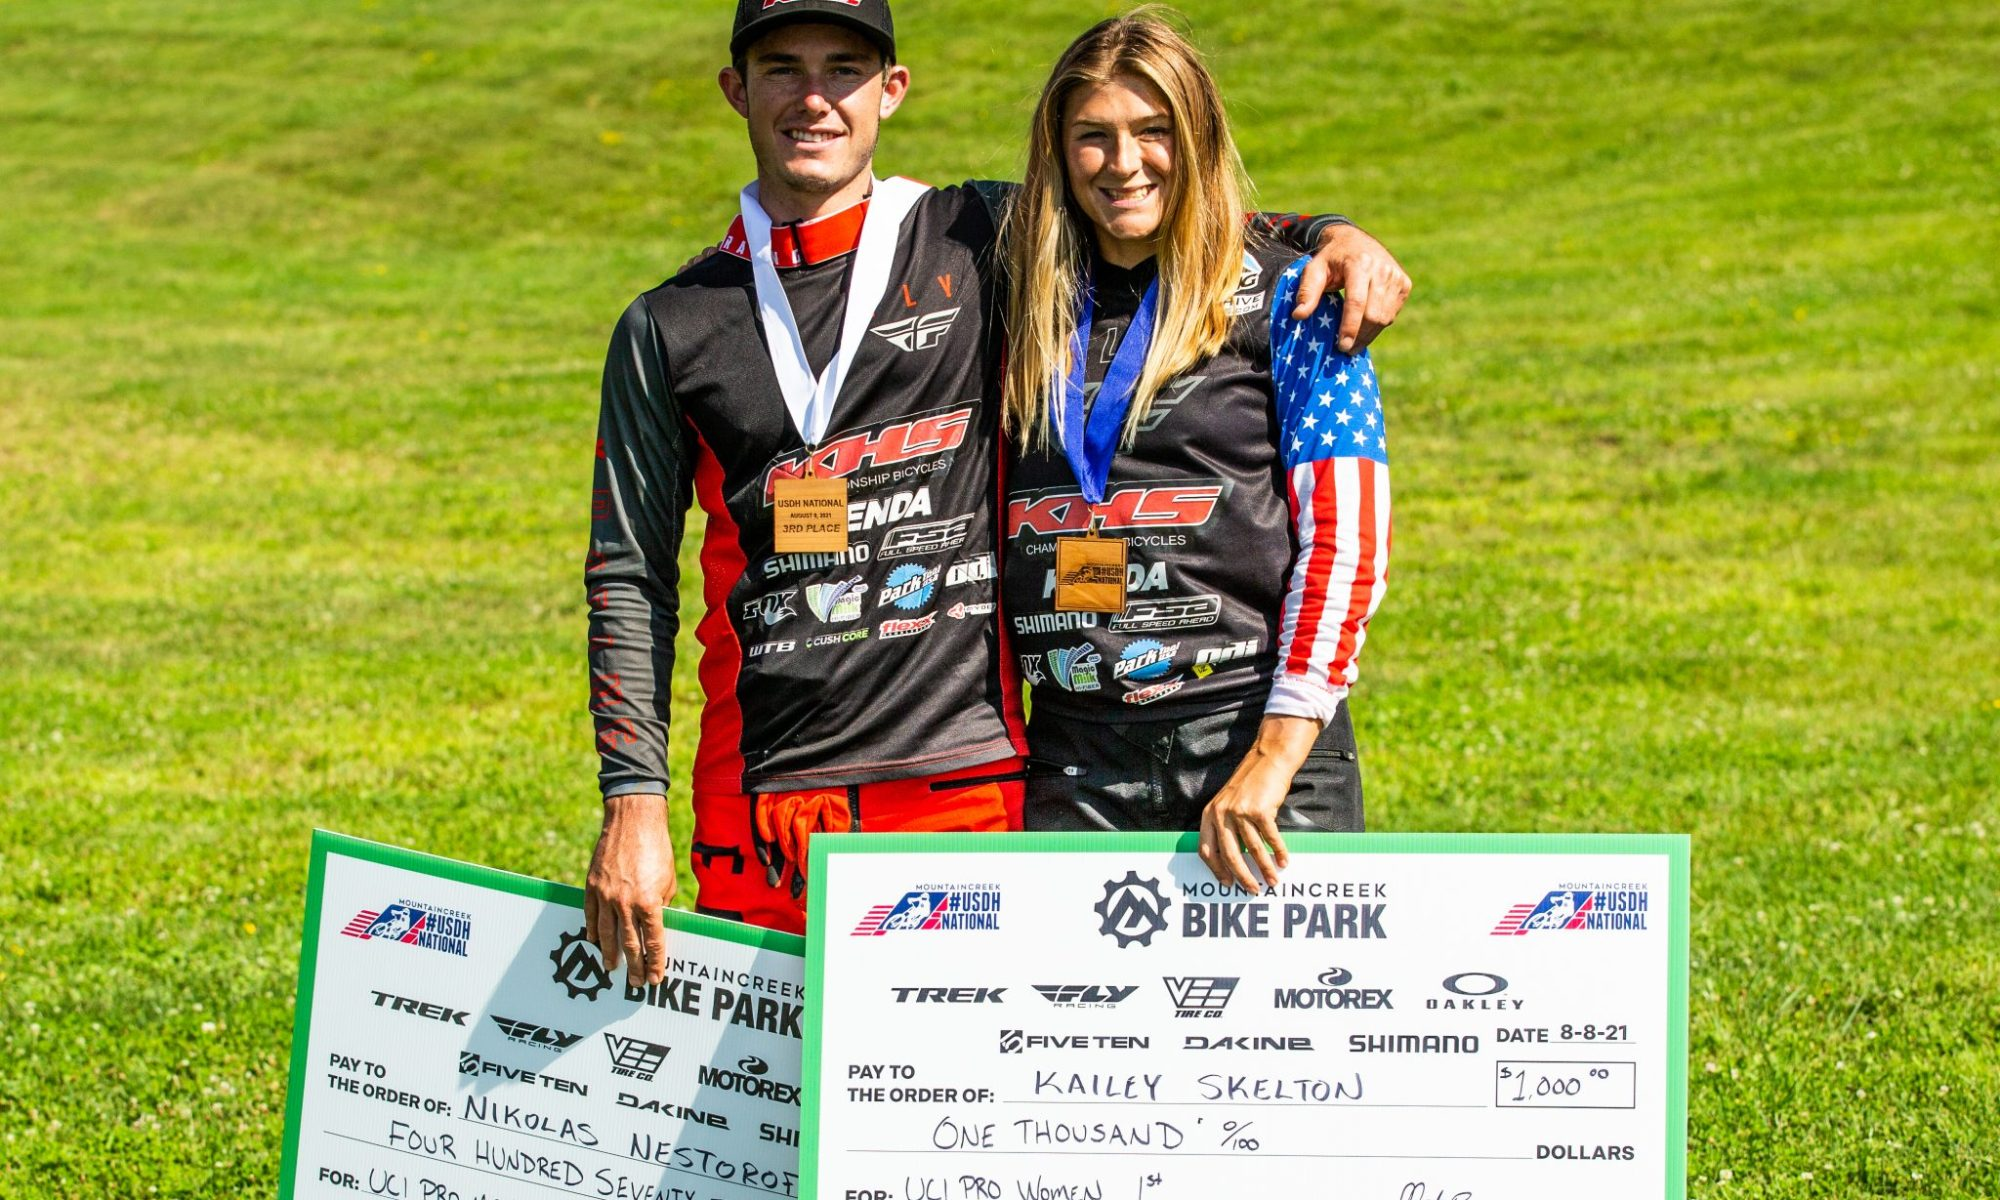 KHS pro MTB riders Kailey Skelton and Nik Nestoroff together after the podium ceremony.